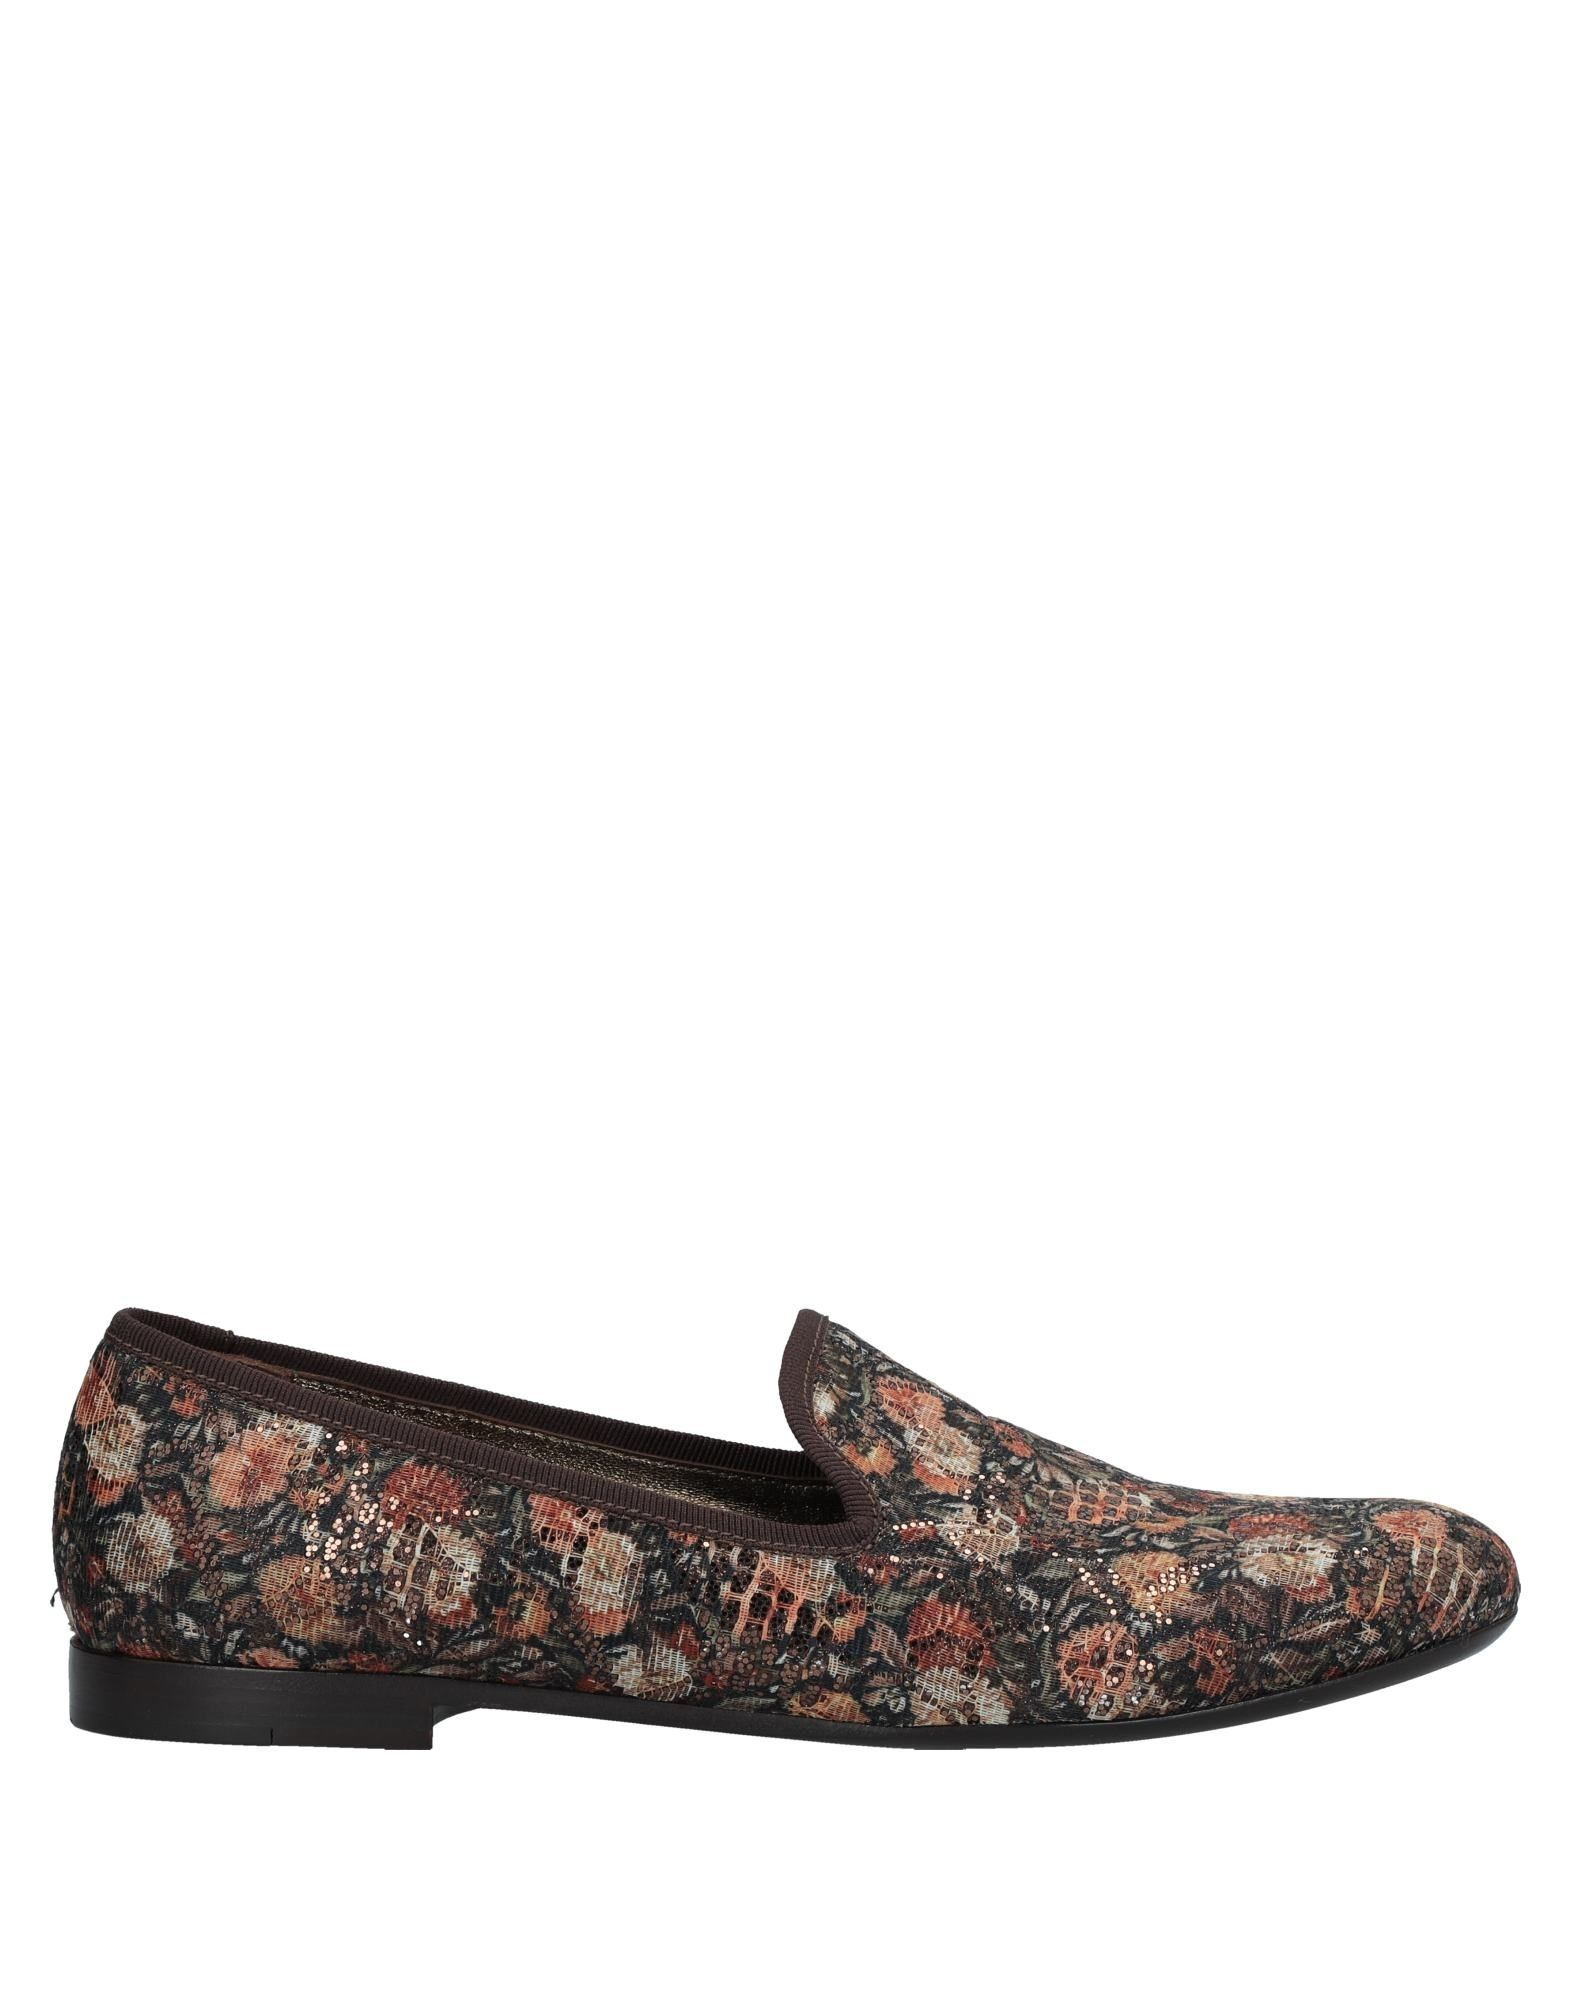 Jacques Morgan Loafers Loafers - Women Jacques Morgan Loafers Loafers online on  Canada - 11532546NV 76c31f